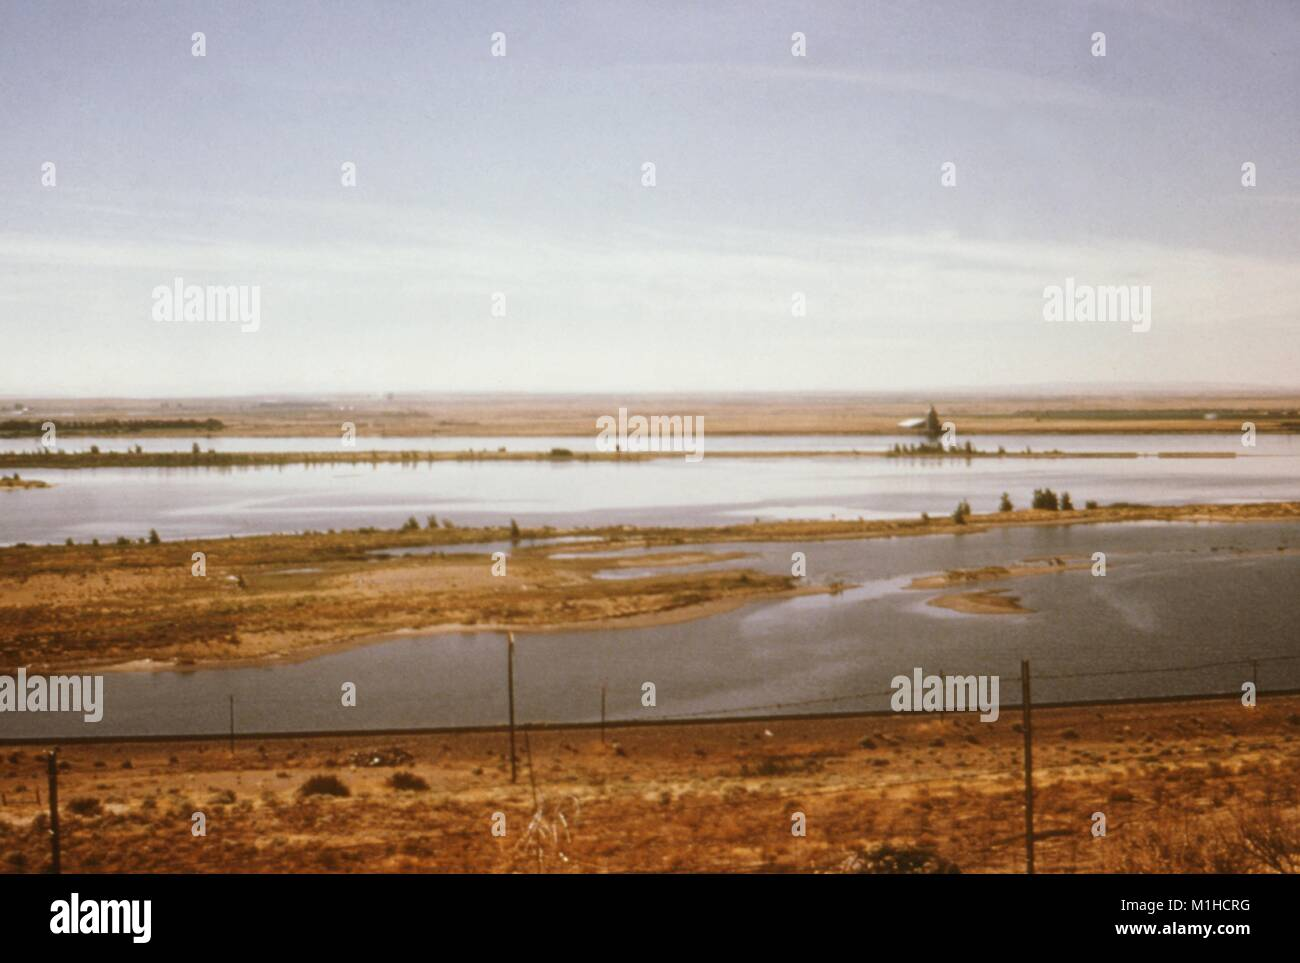 Photograph of a landscape consisting of a river with heaps of land and blue sky above, at the Umatilla Wildlife - Stock Image